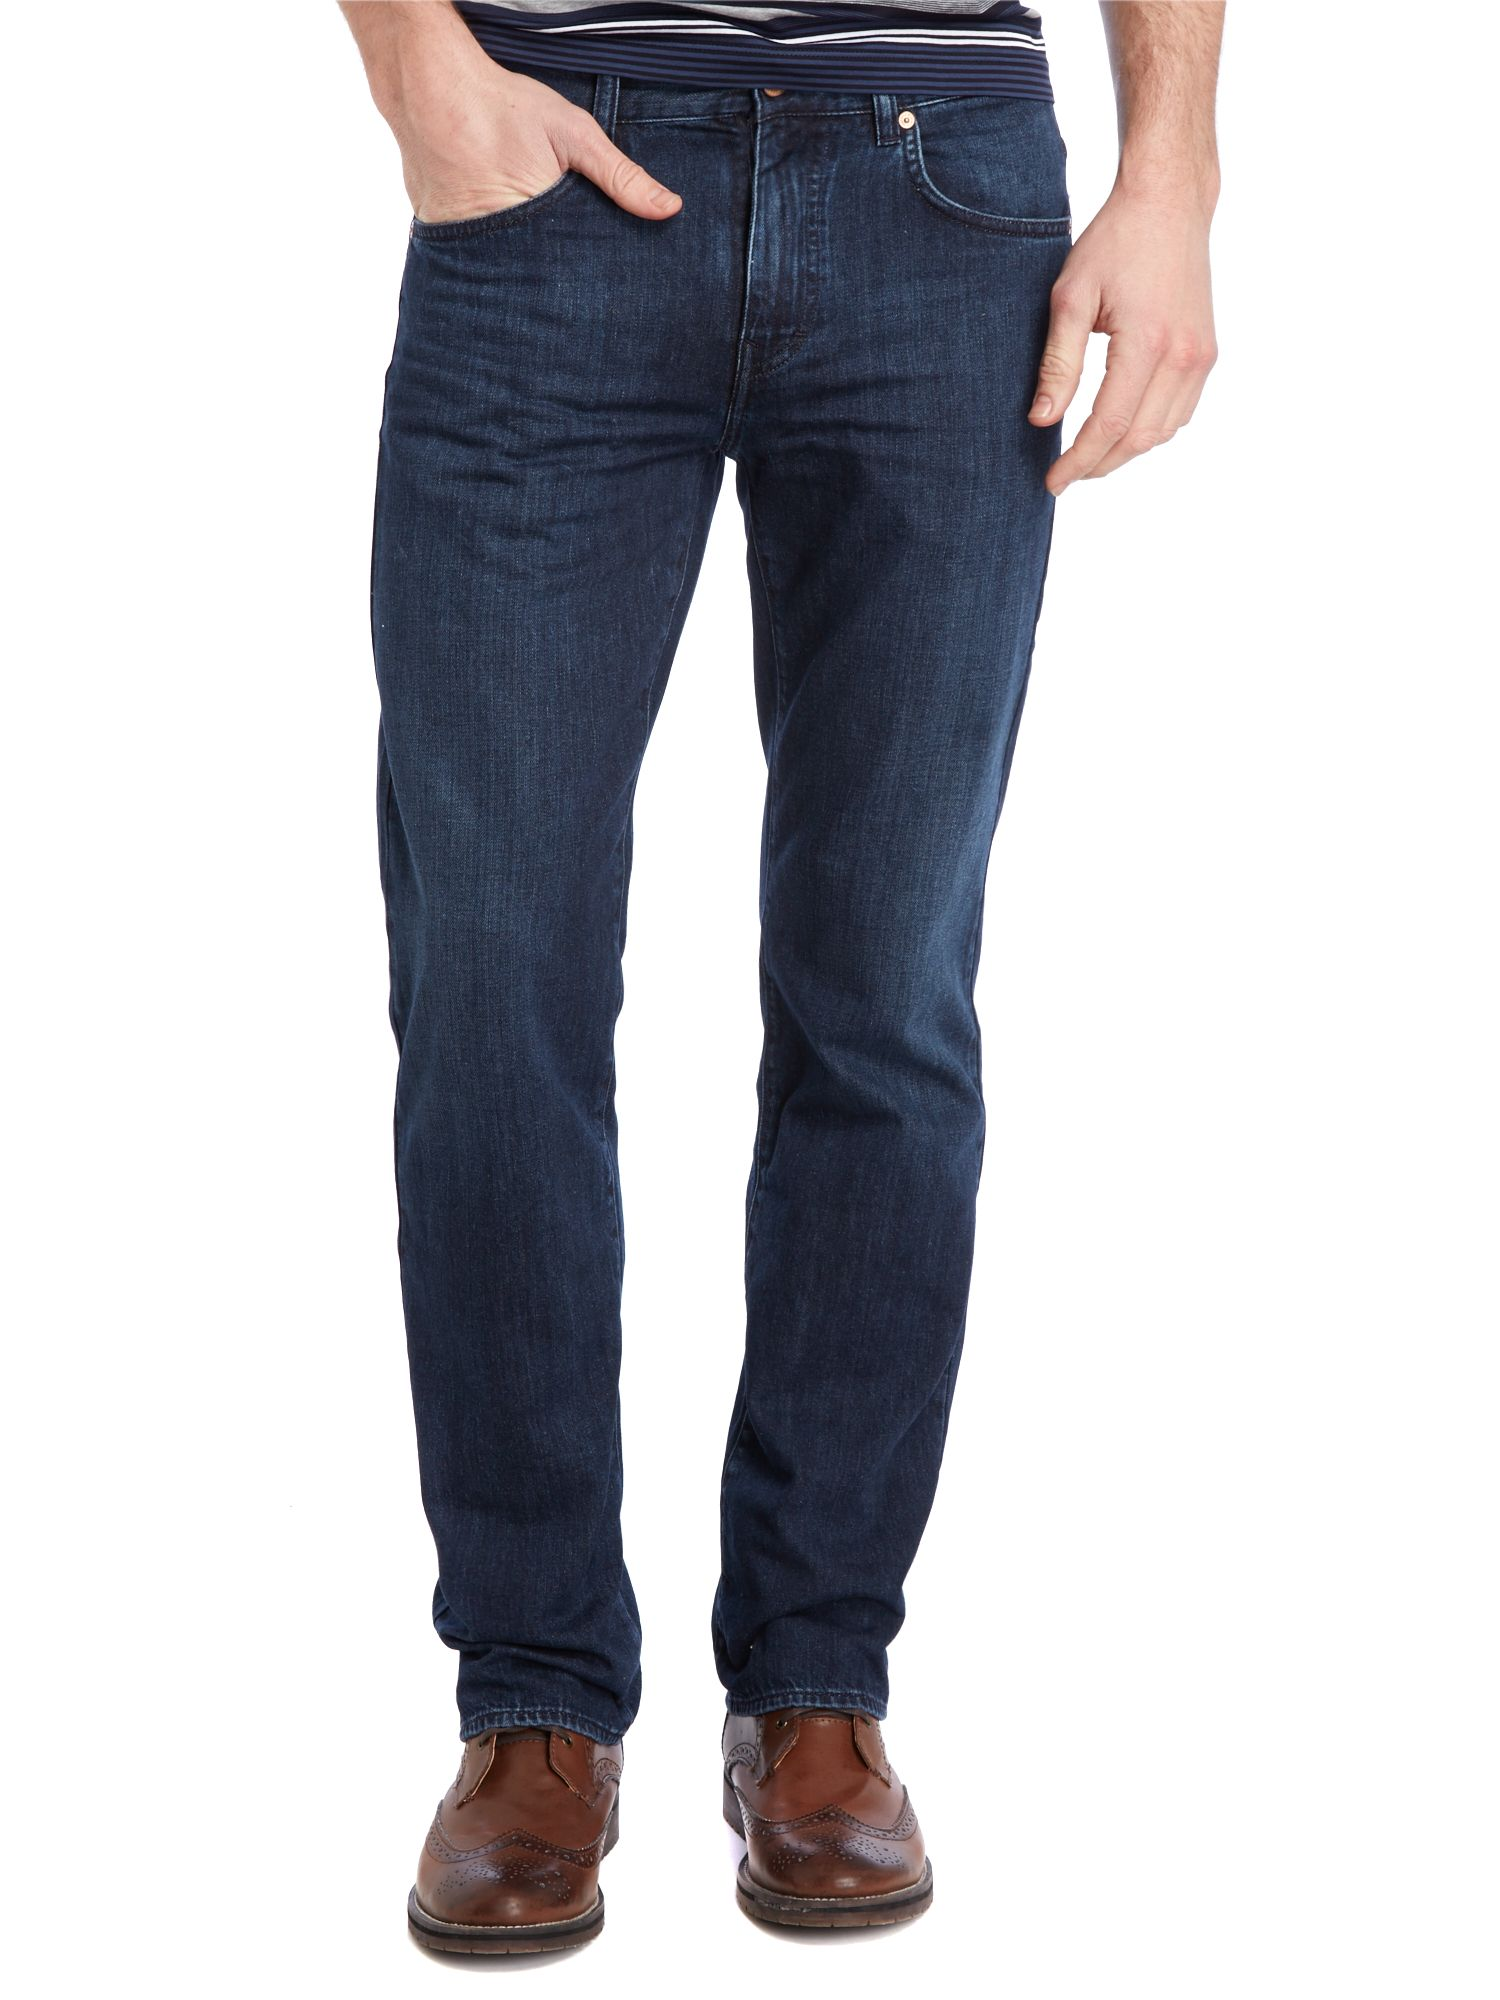 Kansas blue wash straight fit jean